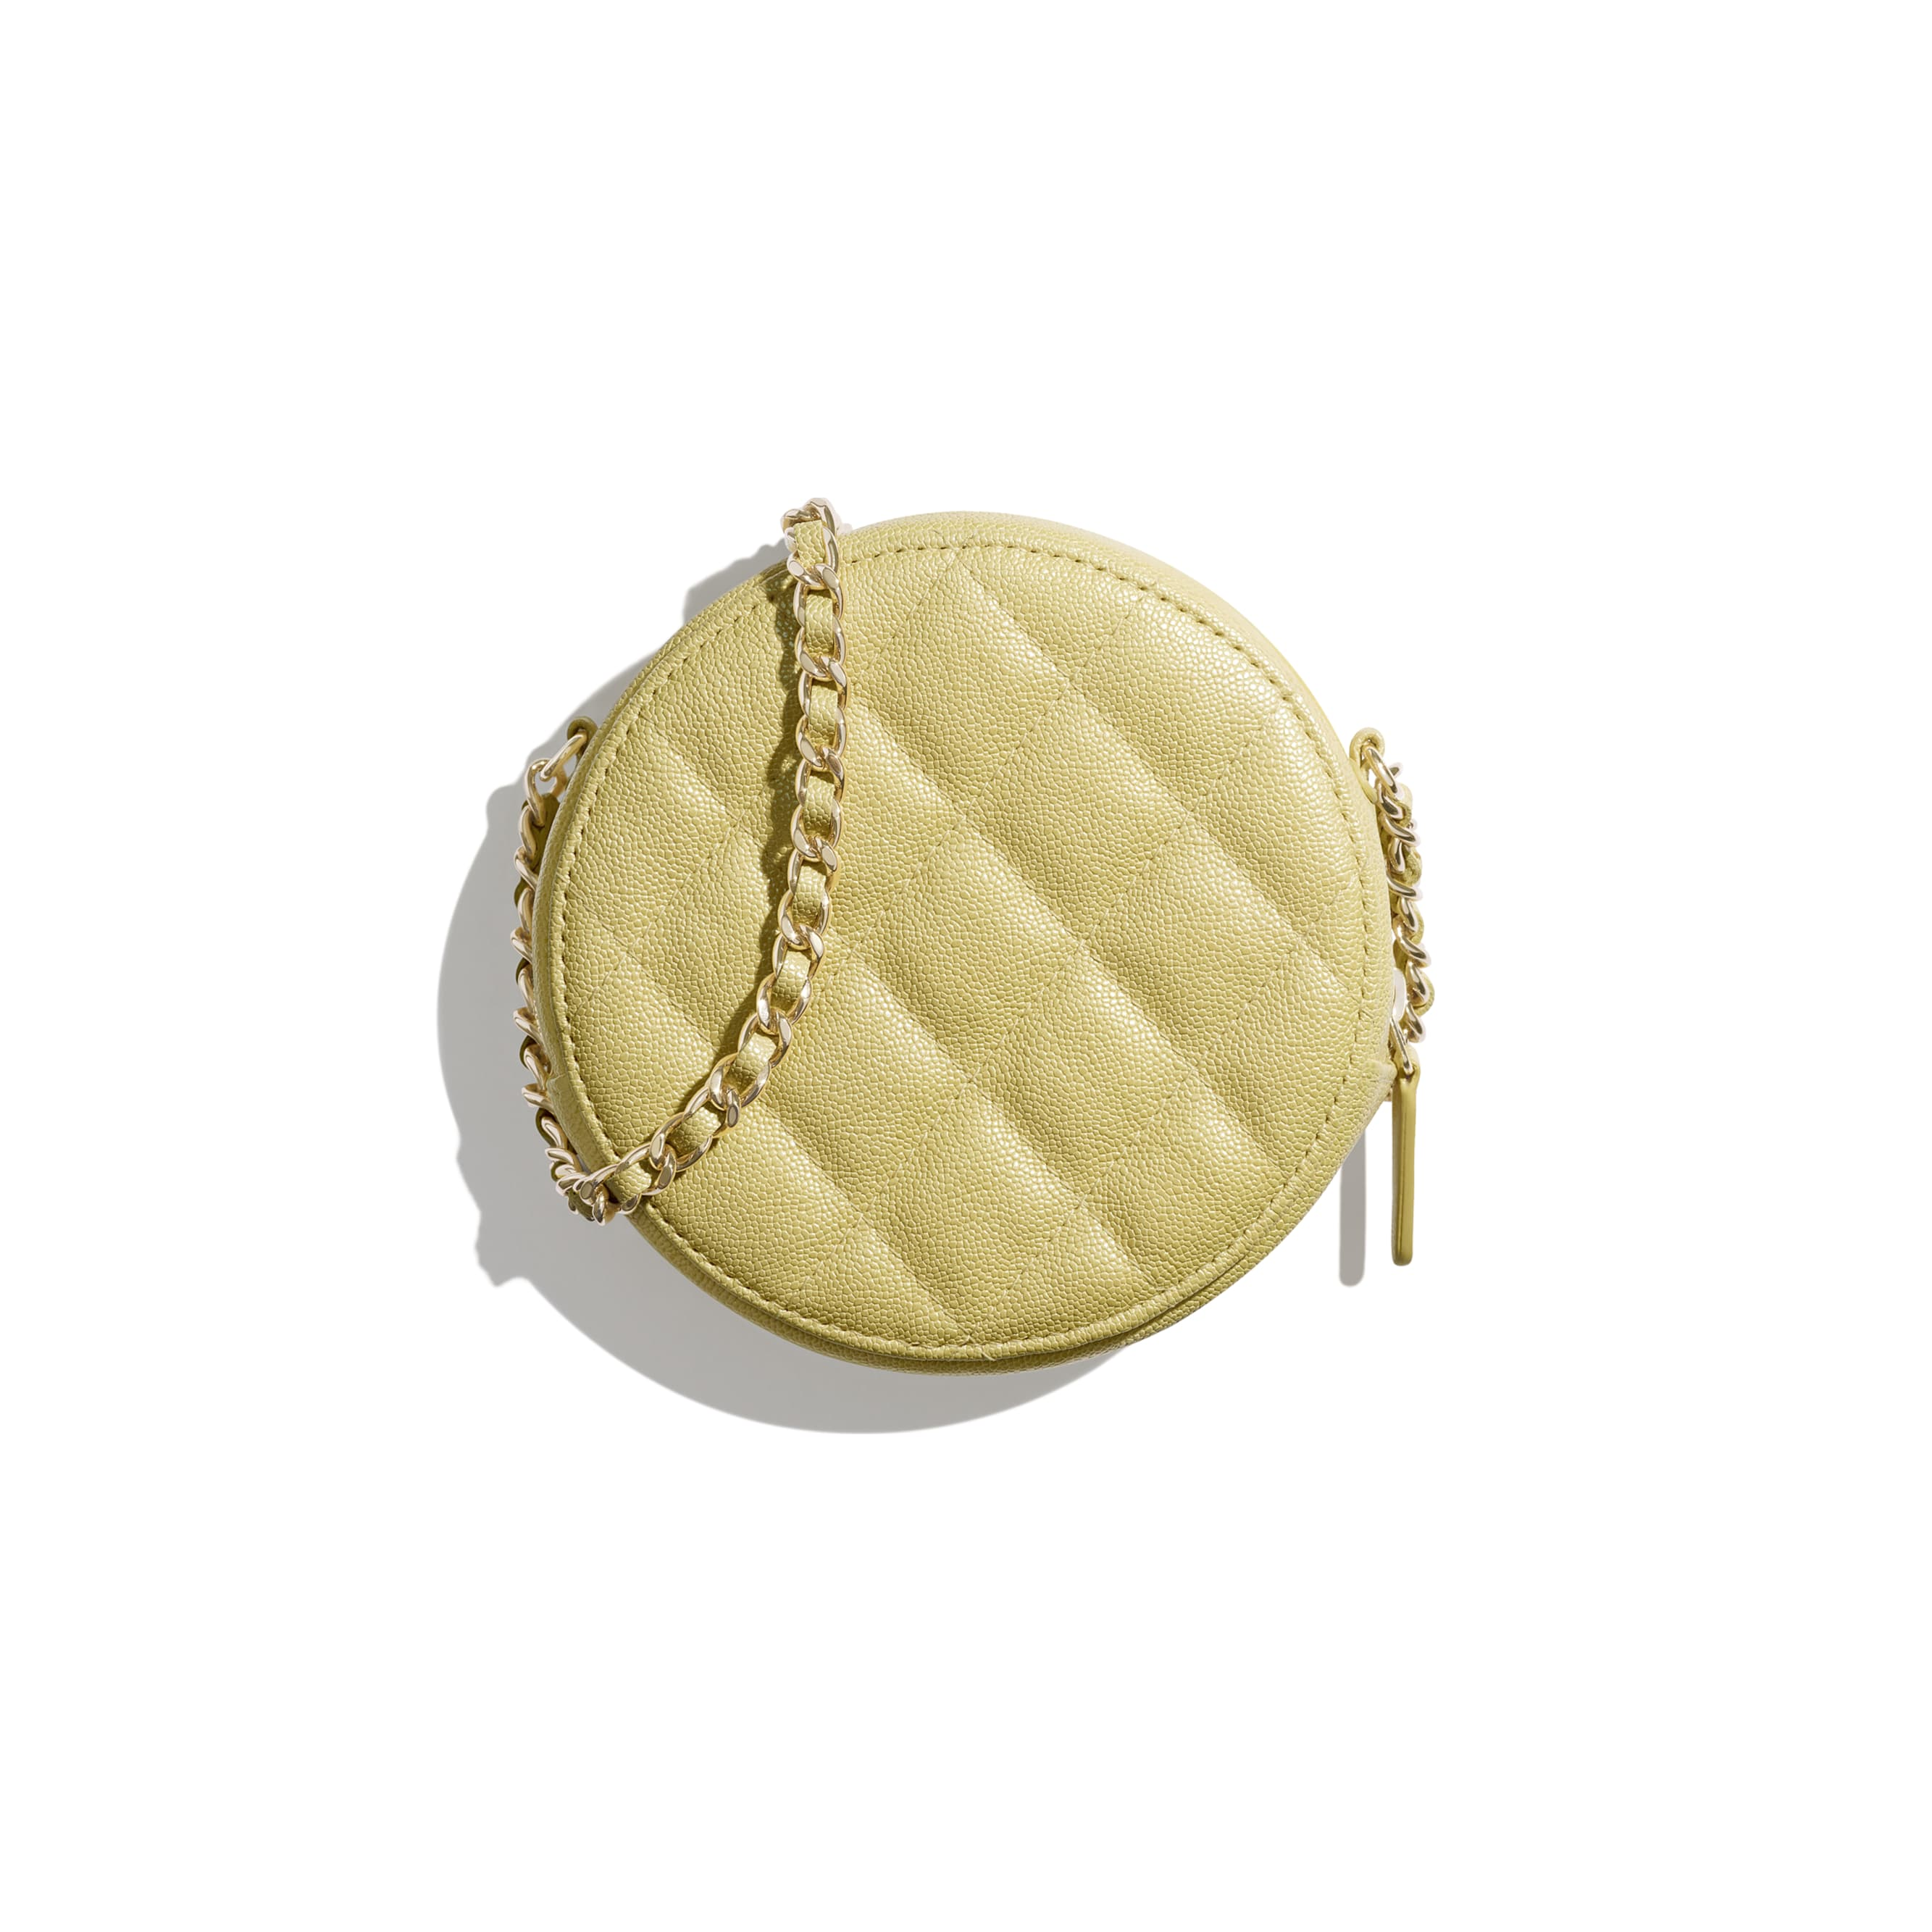 Classic Clutch with Chain - Yellow - Iridescent Grained Calfskin & Gold-Tone Metal - Alternative view - see standard sized version